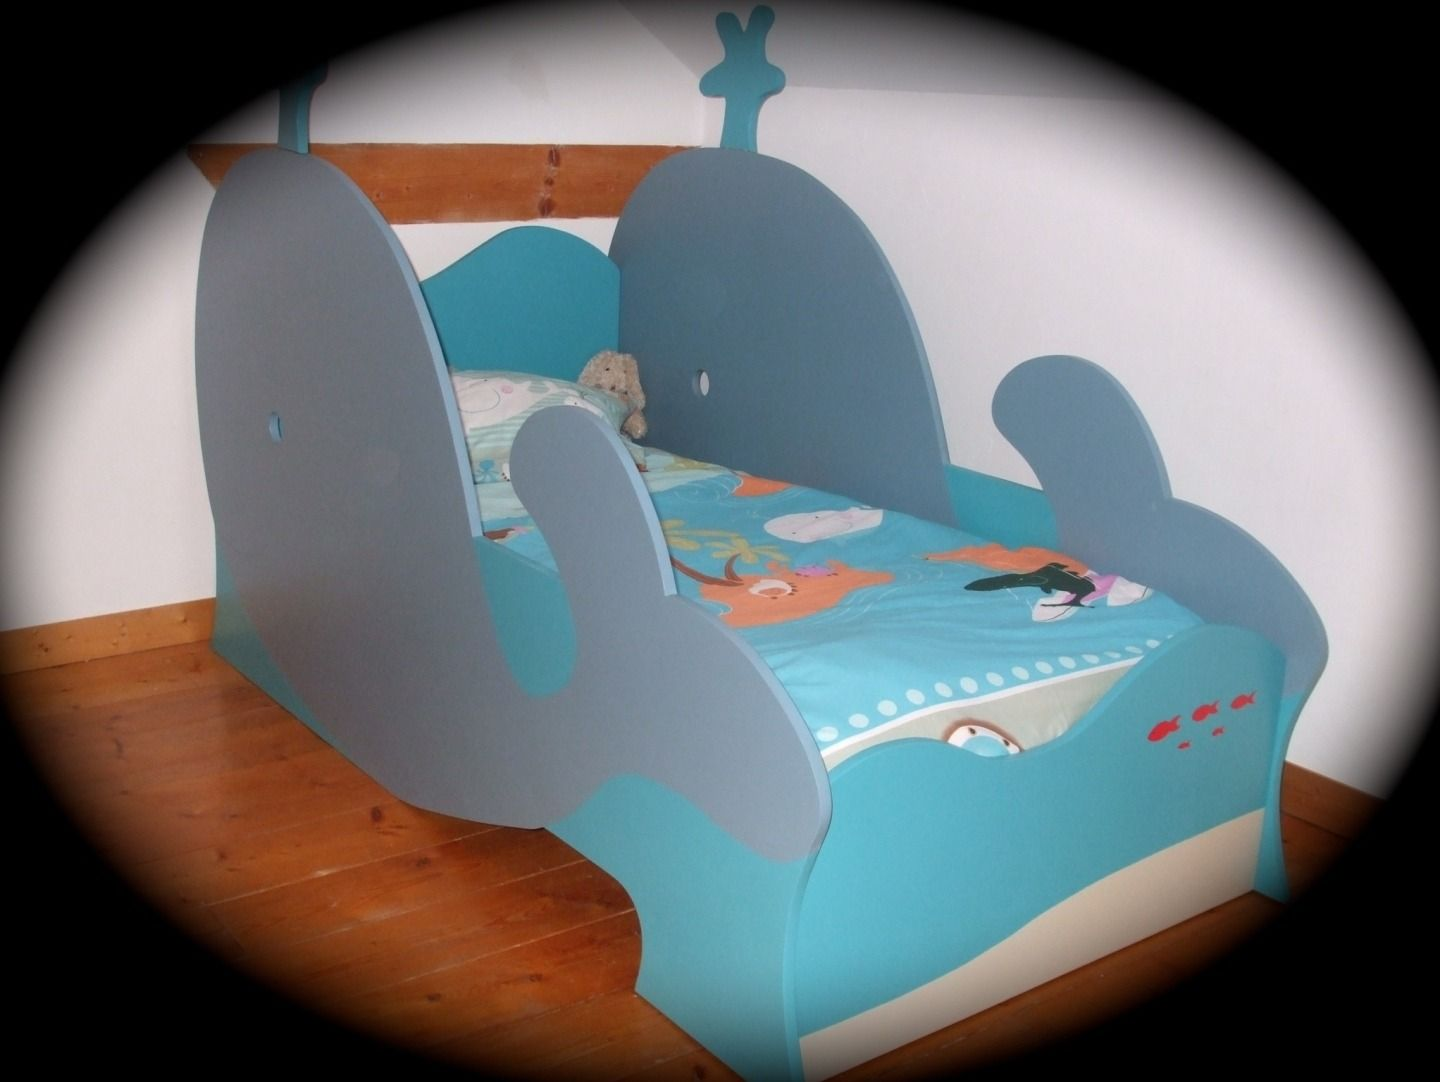 lit baleine pour enfant gar on original et cologique. Black Bedroom Furniture Sets. Home Design Ideas